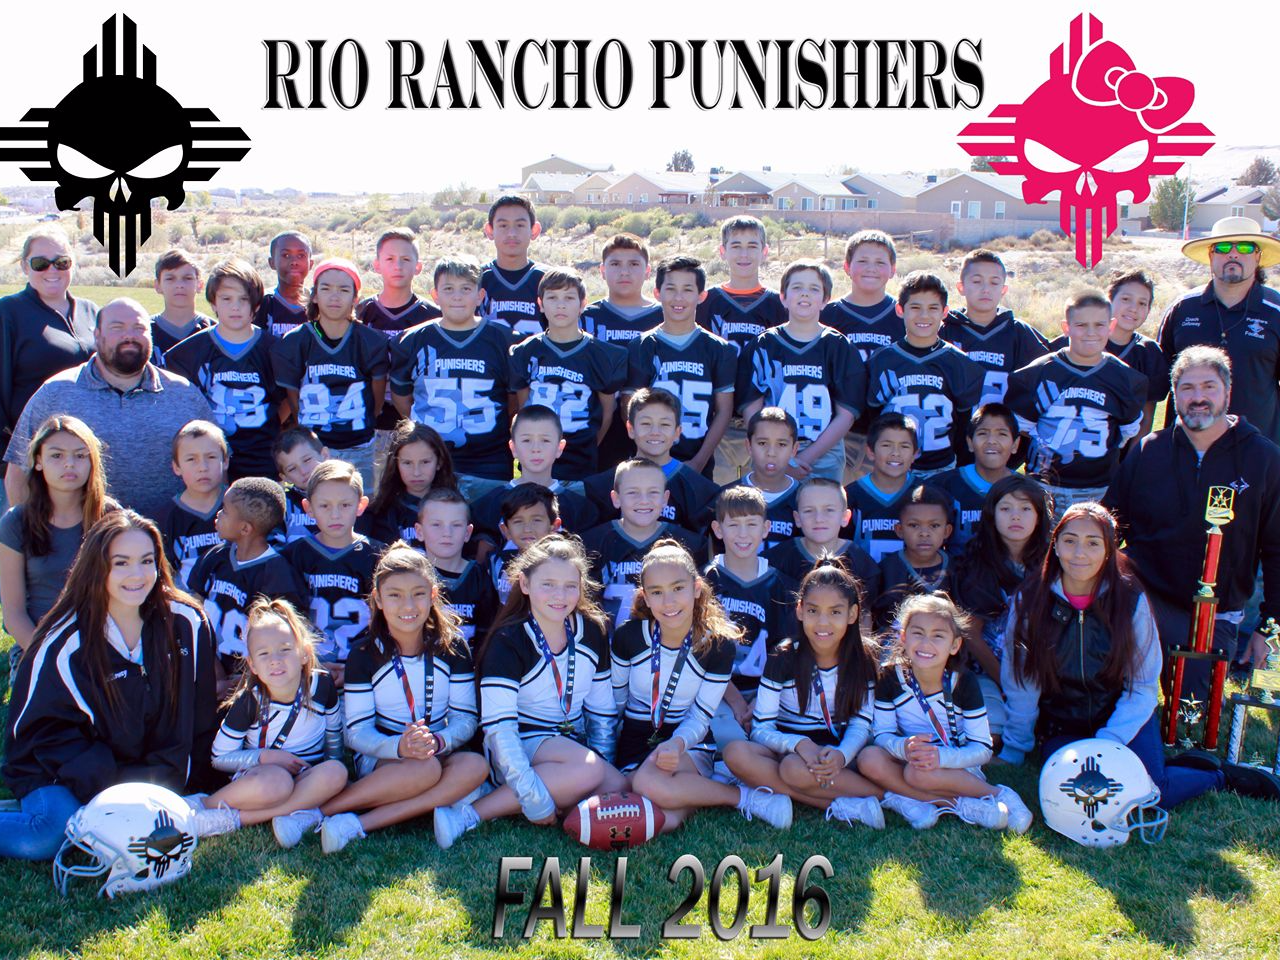 Rio Rancho Punishers Football/Cheer